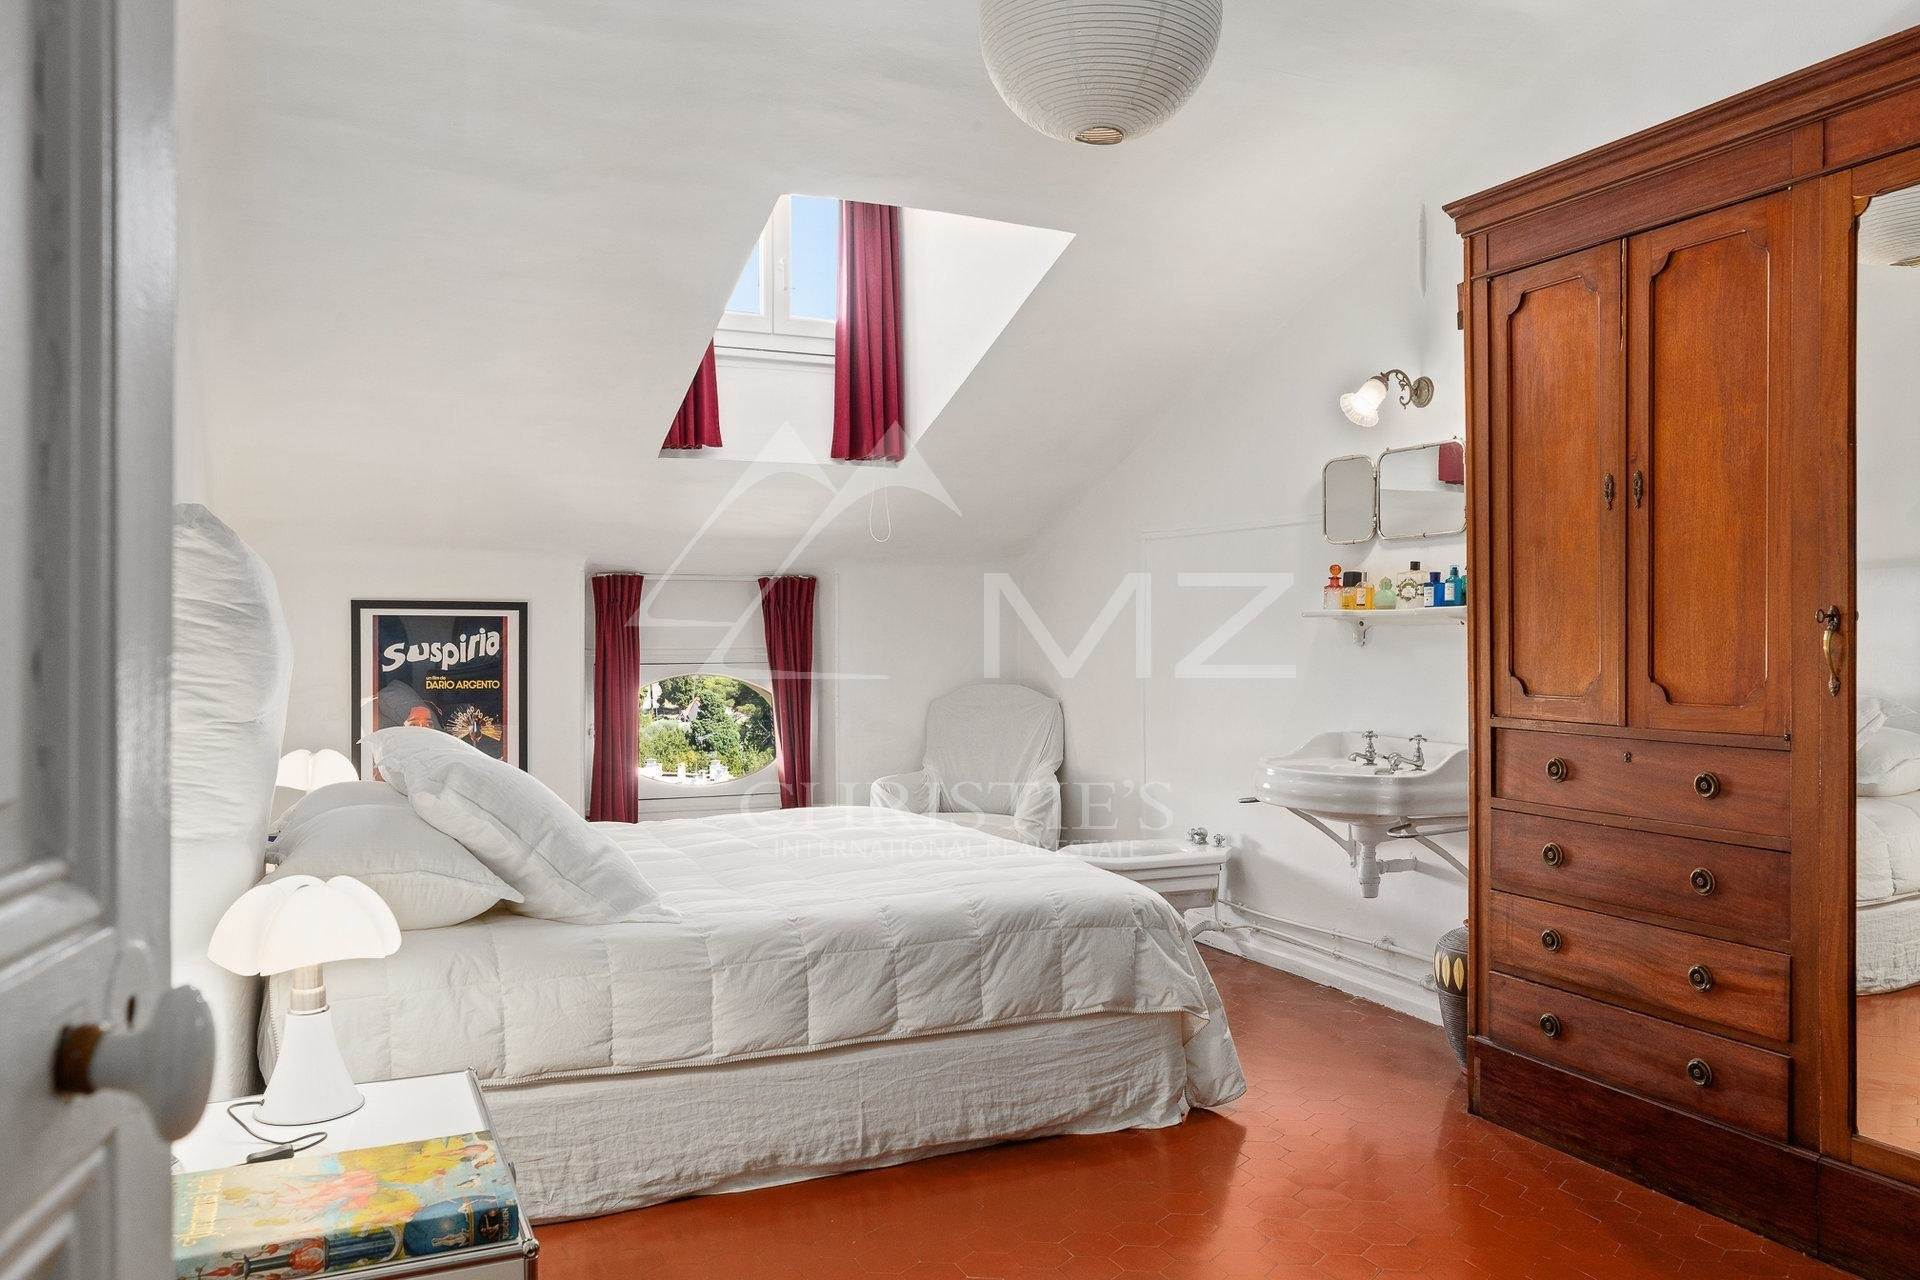 6. 公寓 為 出售 在 Cannes - Montrose - Bourgeois style apartment on a top floor Cannes, 海濱阿爾卑斯省,06400 法國